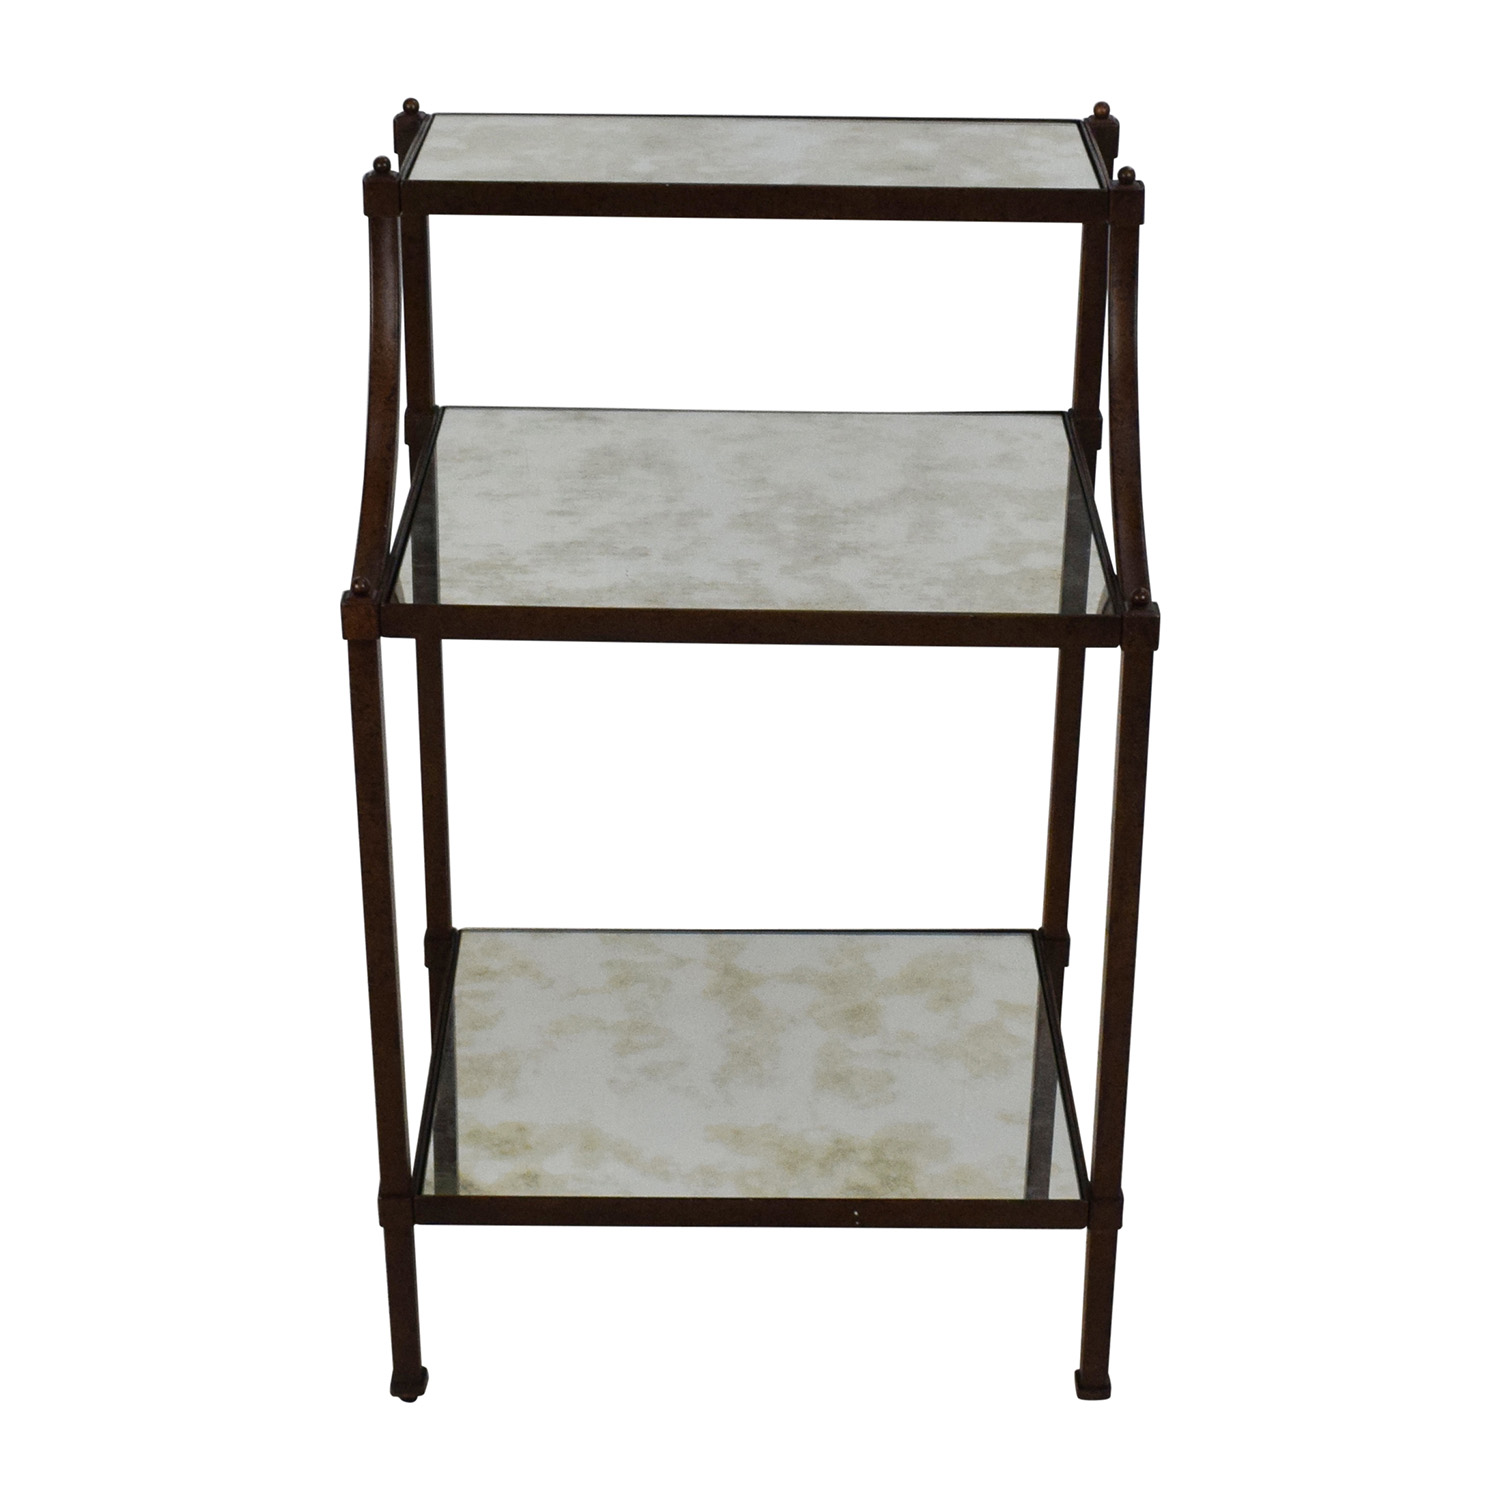 OFF Pottery Barn Pottery Barn Etagere Bedside Table Tables - Pottery barn chloe end table